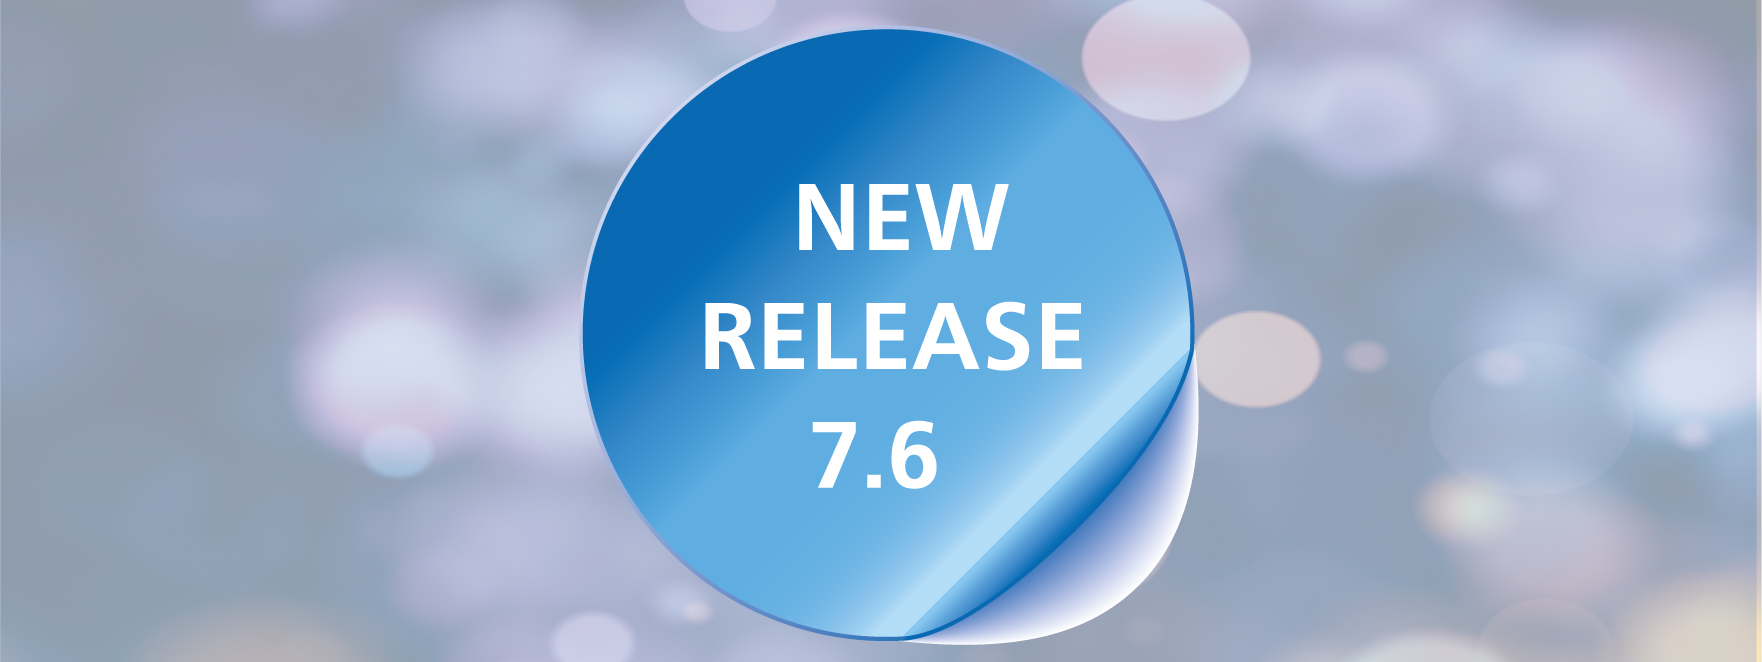 lbase neues release